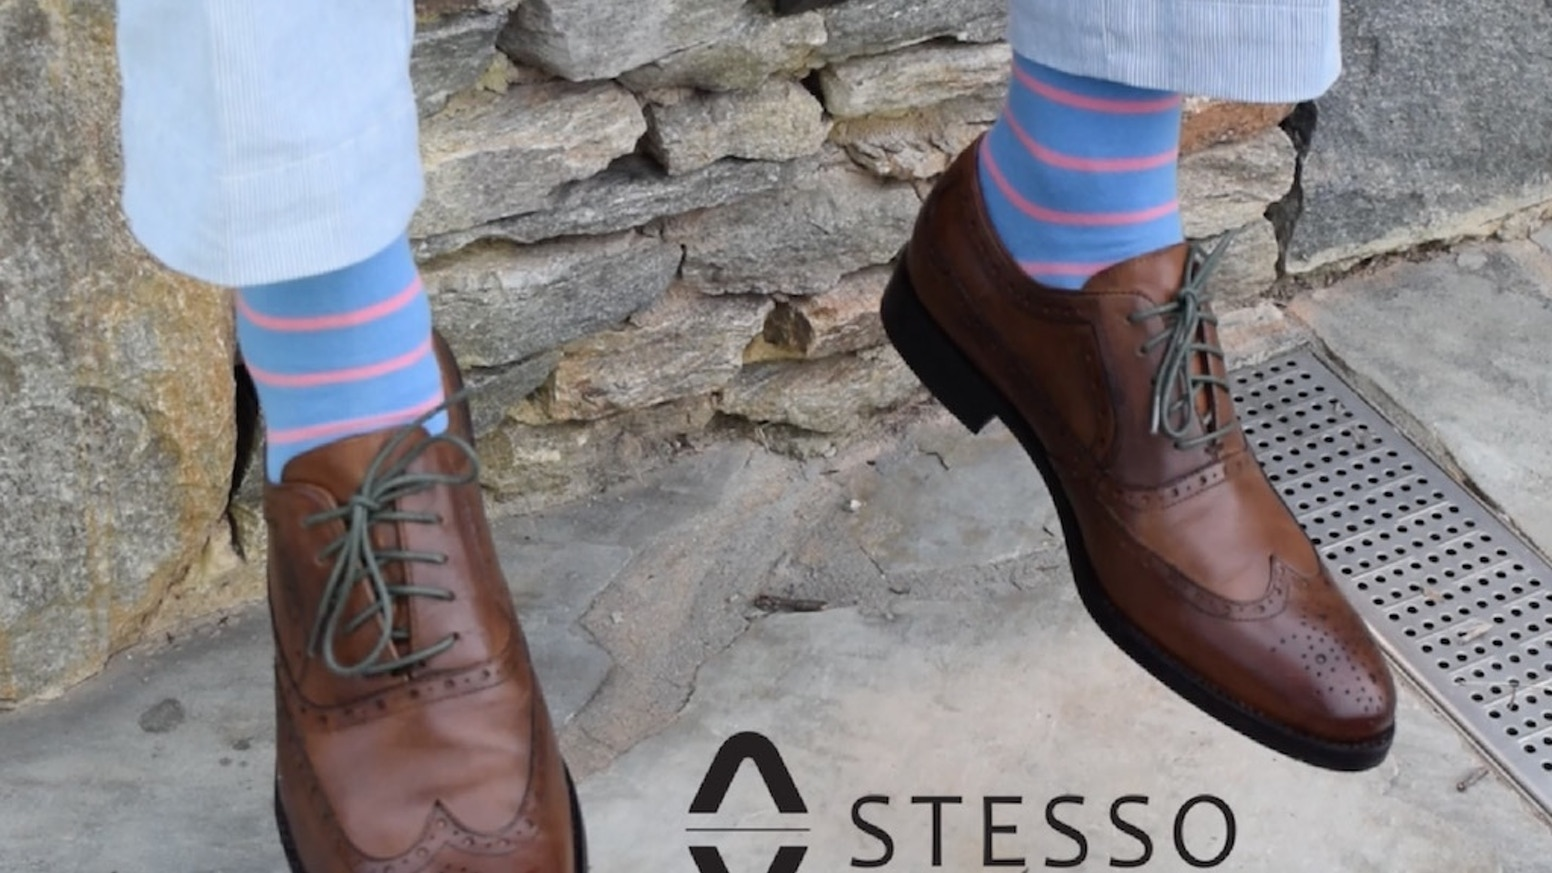 Premium quality socks that initiate the journey to join a growing culture that is inspired to express their passion, pride and style.